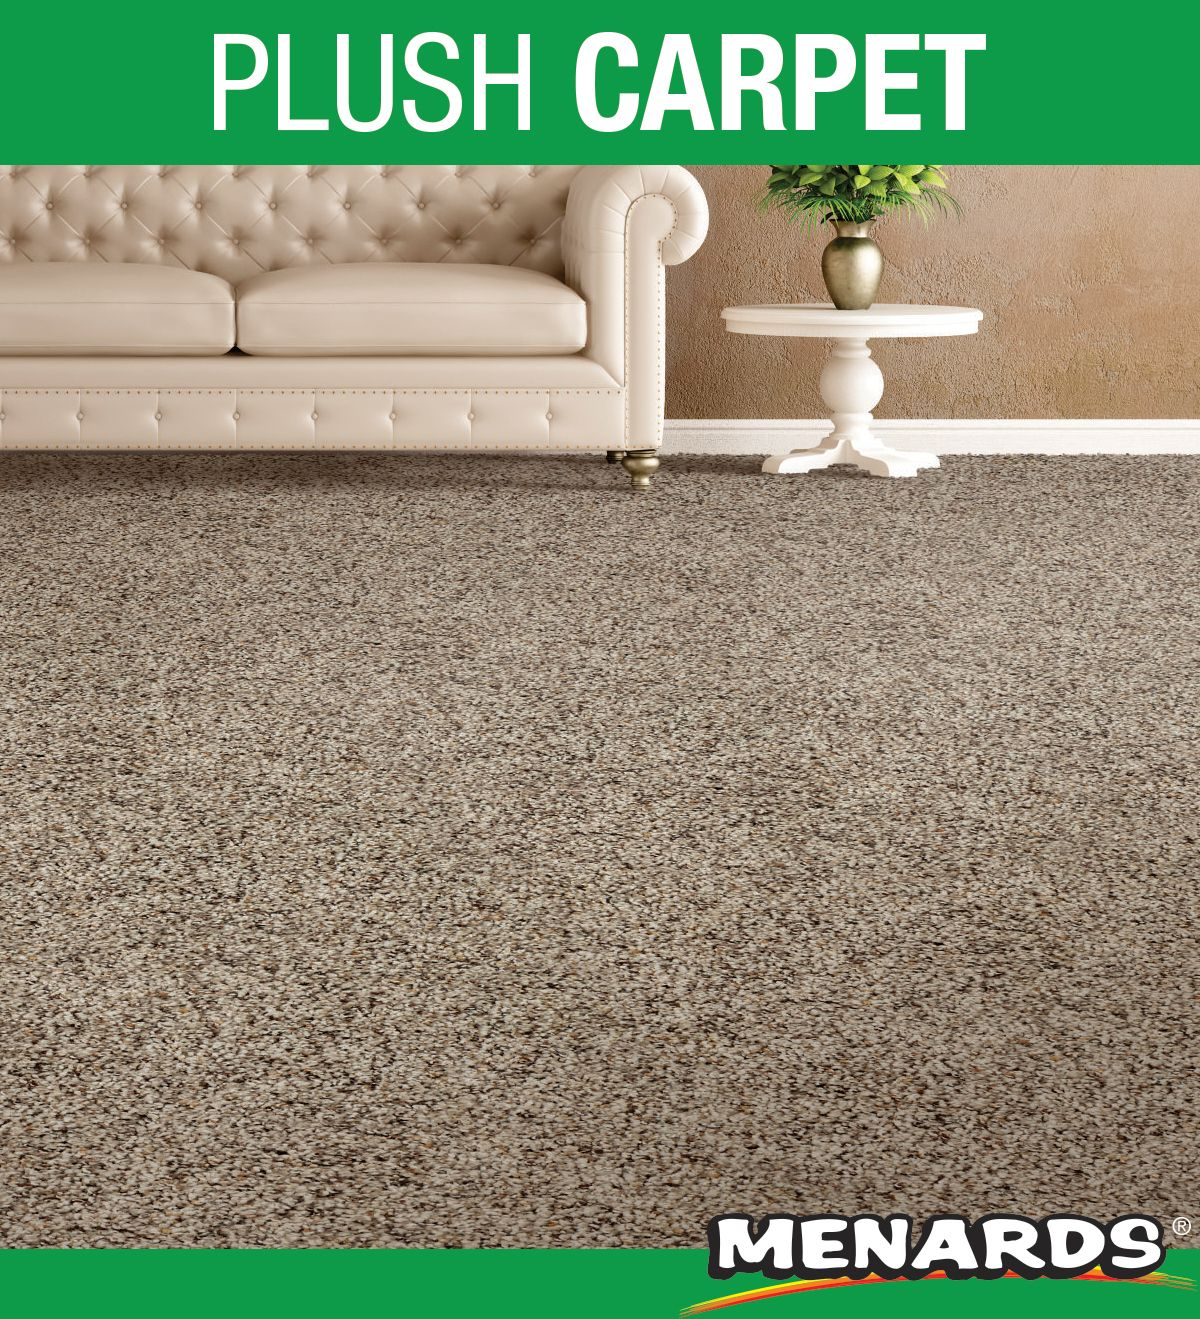 Mohawk Aldrich Plush Carpet 12 Ft Wide In 2020 Plush Carpet Carpet Floor Rugs